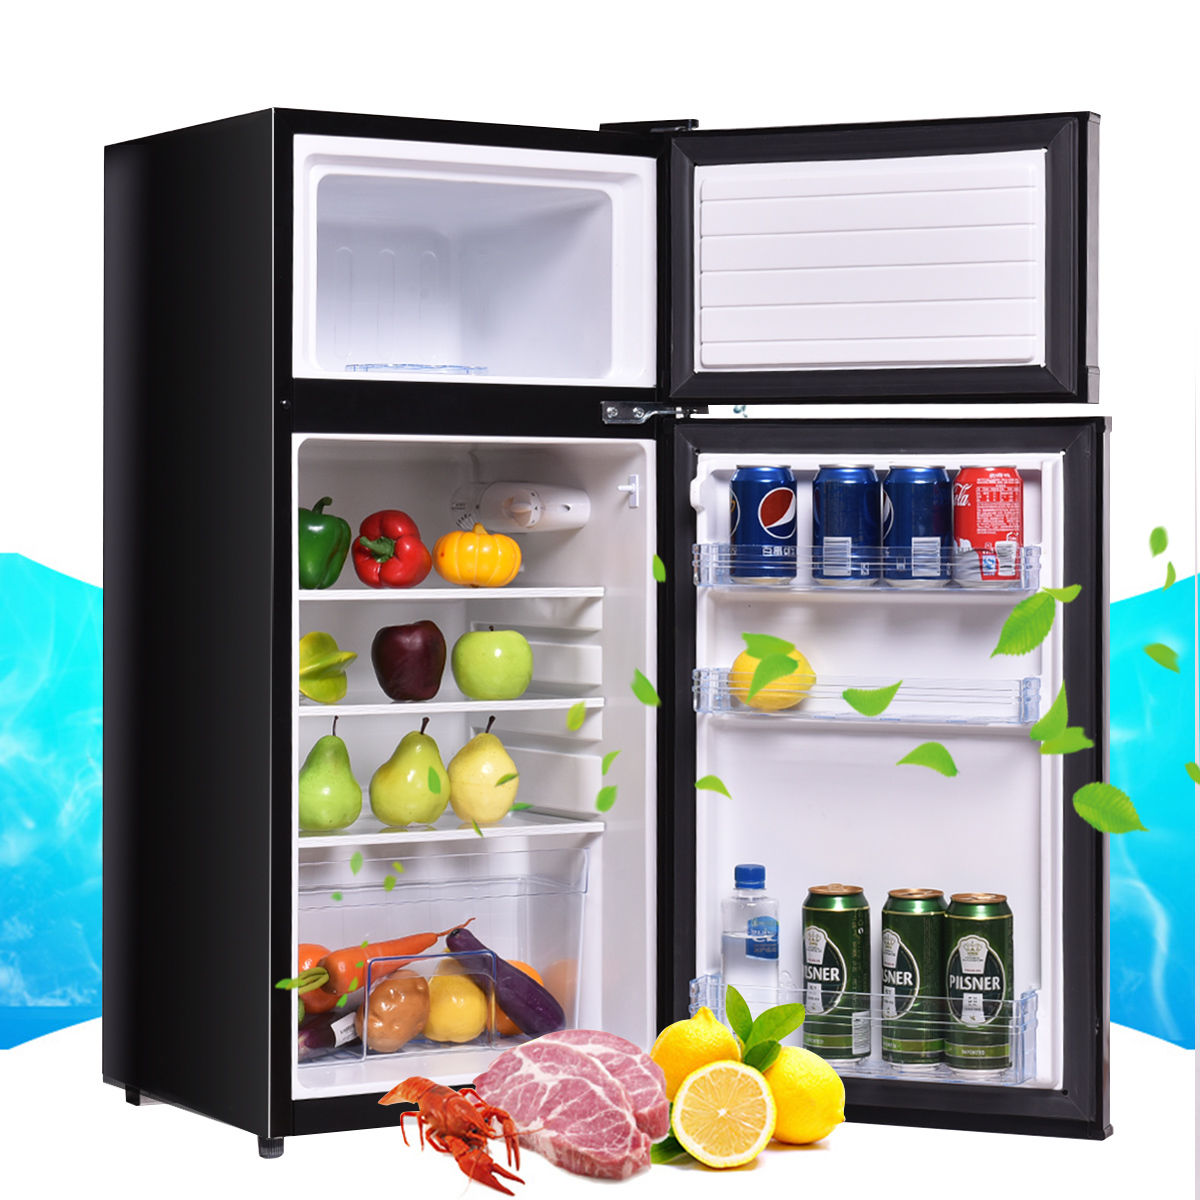 Costway 2 Doors 3.4 cu ft. Unit Stainless Steel Compact Mini Refrigerator Freezer Cooler